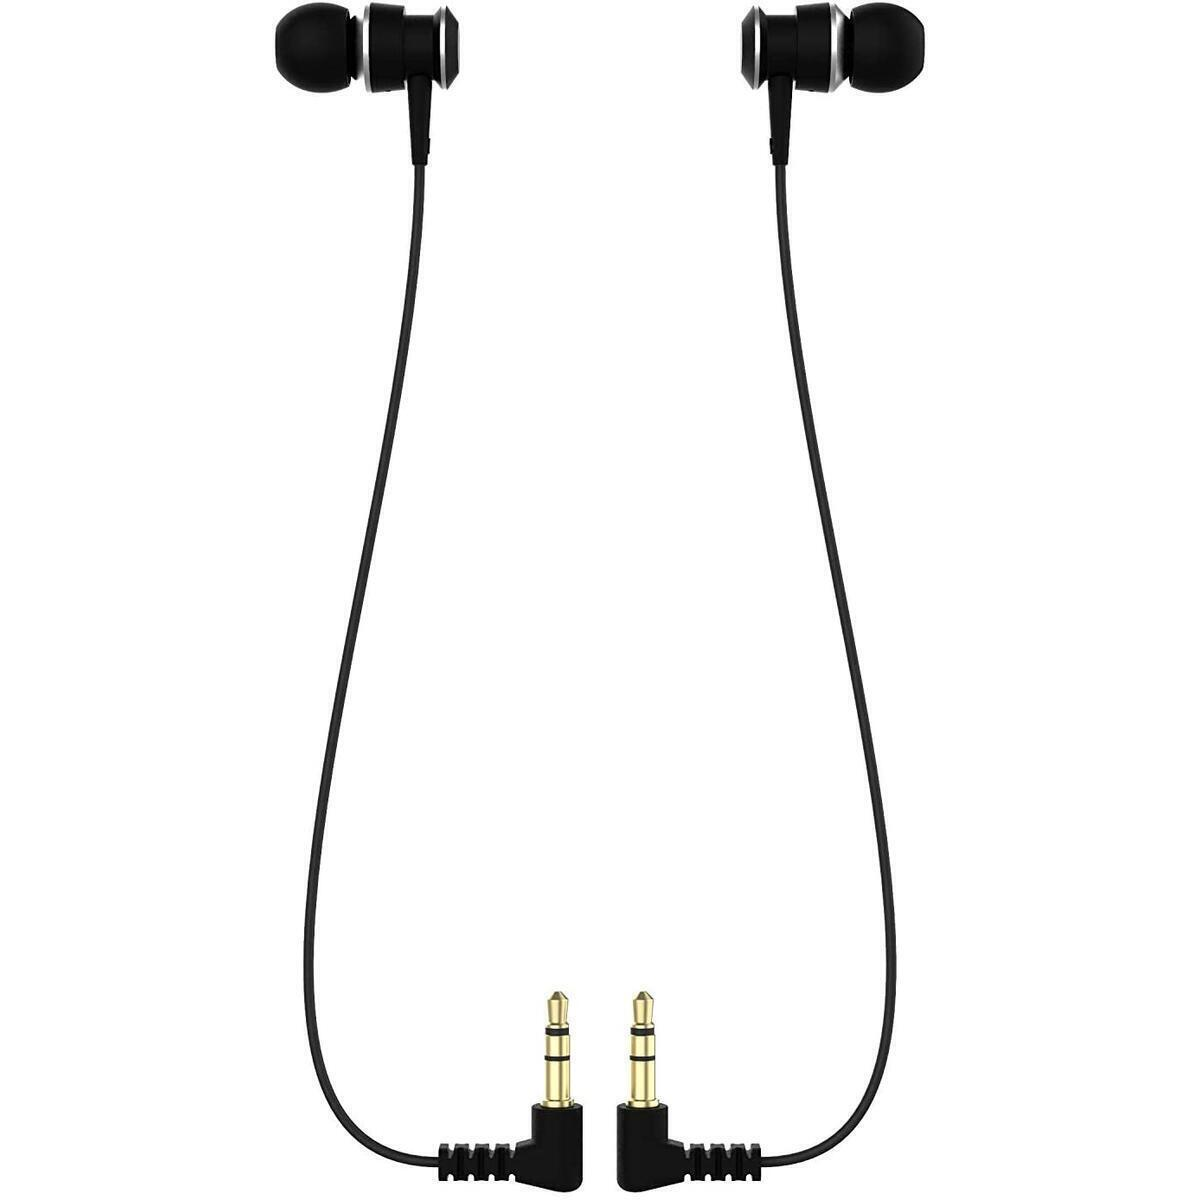 In-Ear Headphones for The Oculus Quest 1 (not the Quest 2!)